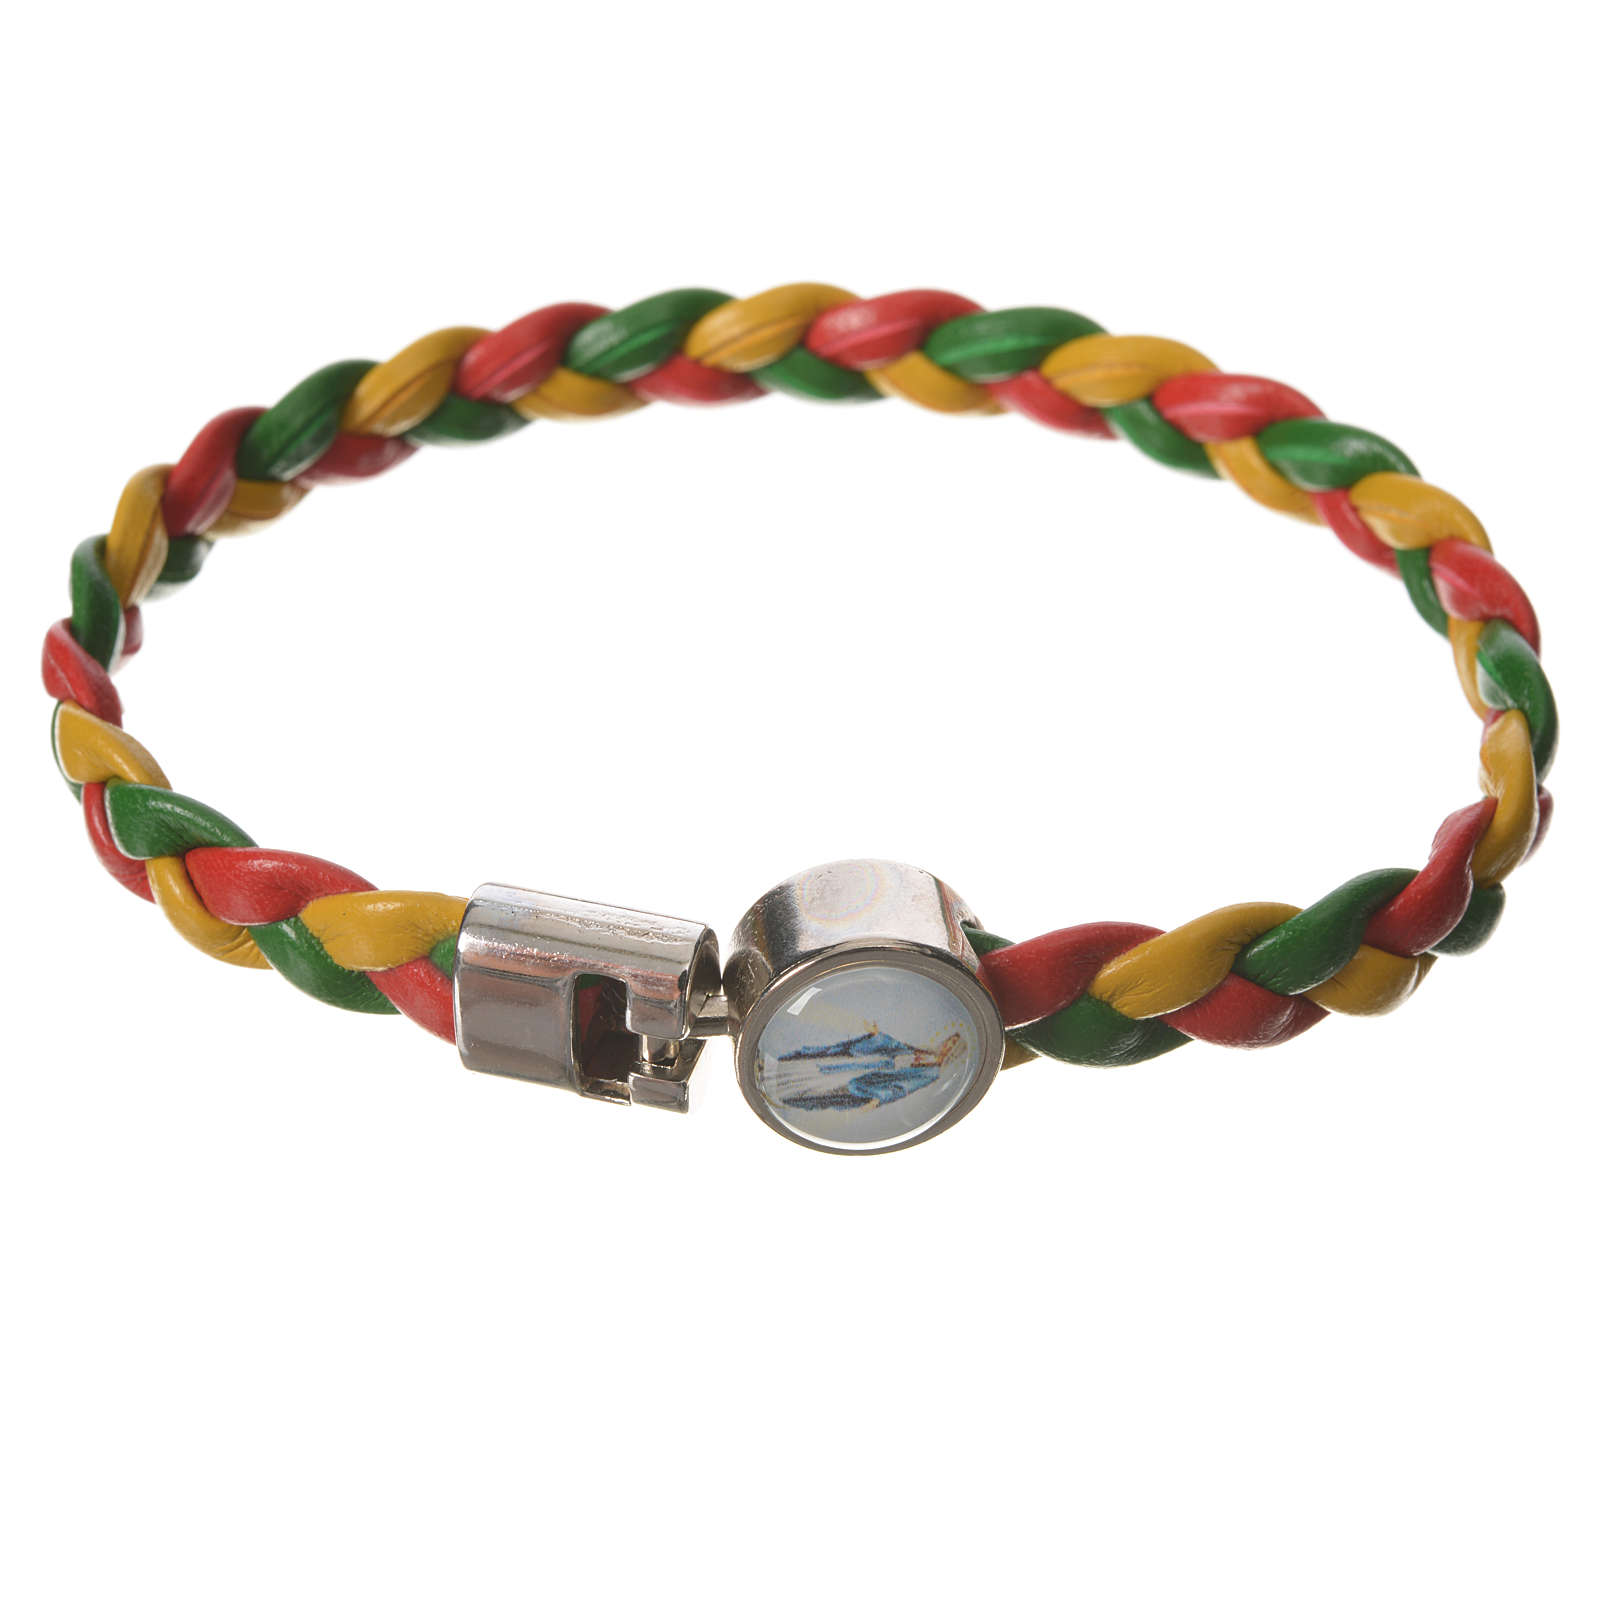 Braided bracelet, 20cm red, yellow, green Miraculous Medal 4